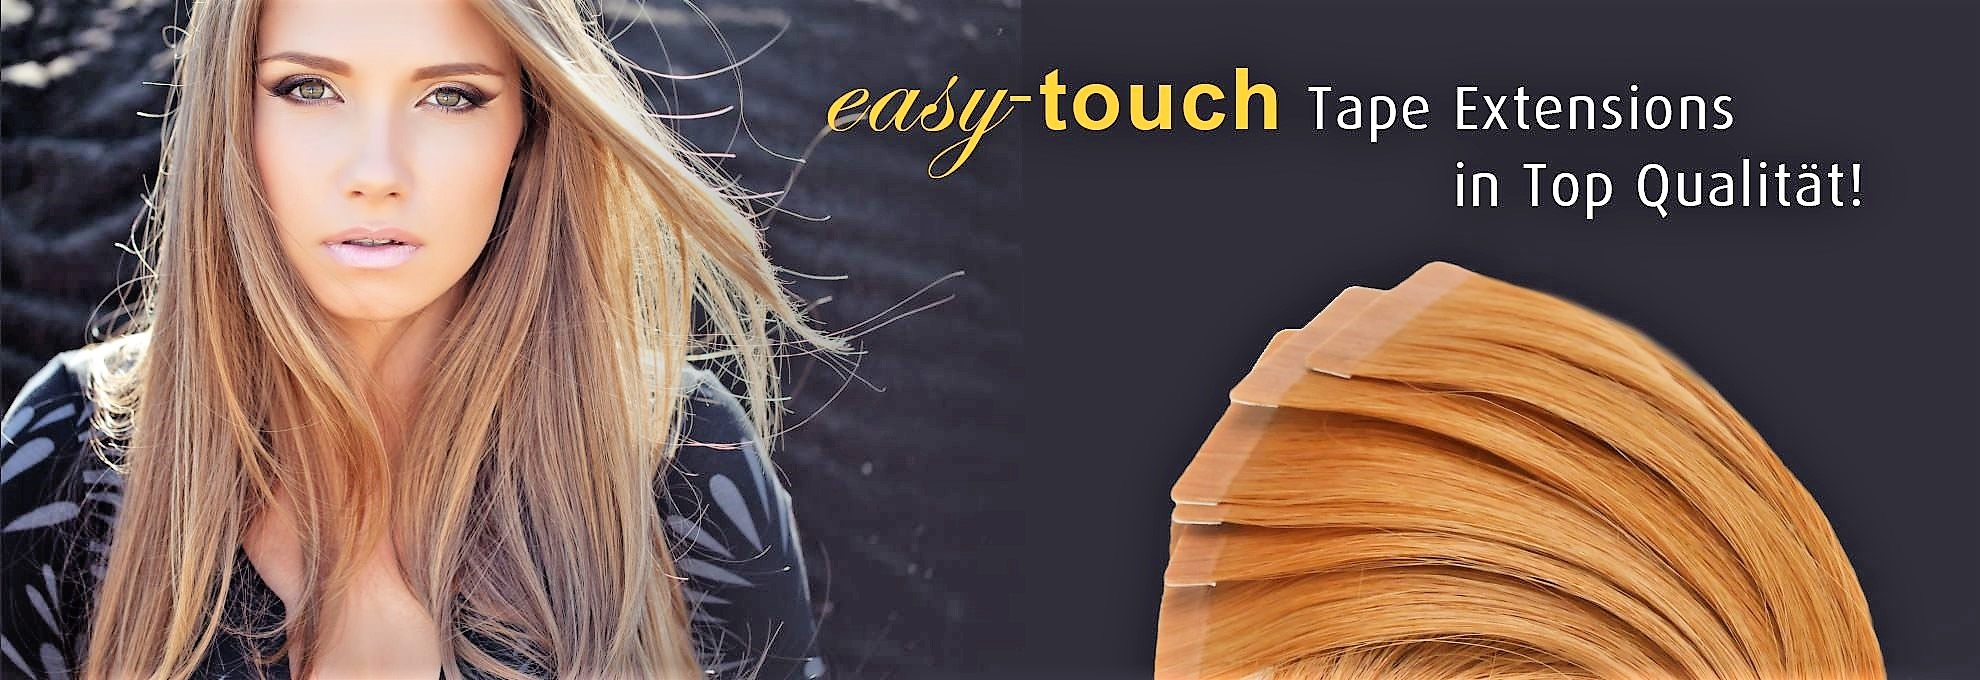 easy touch tape extensions